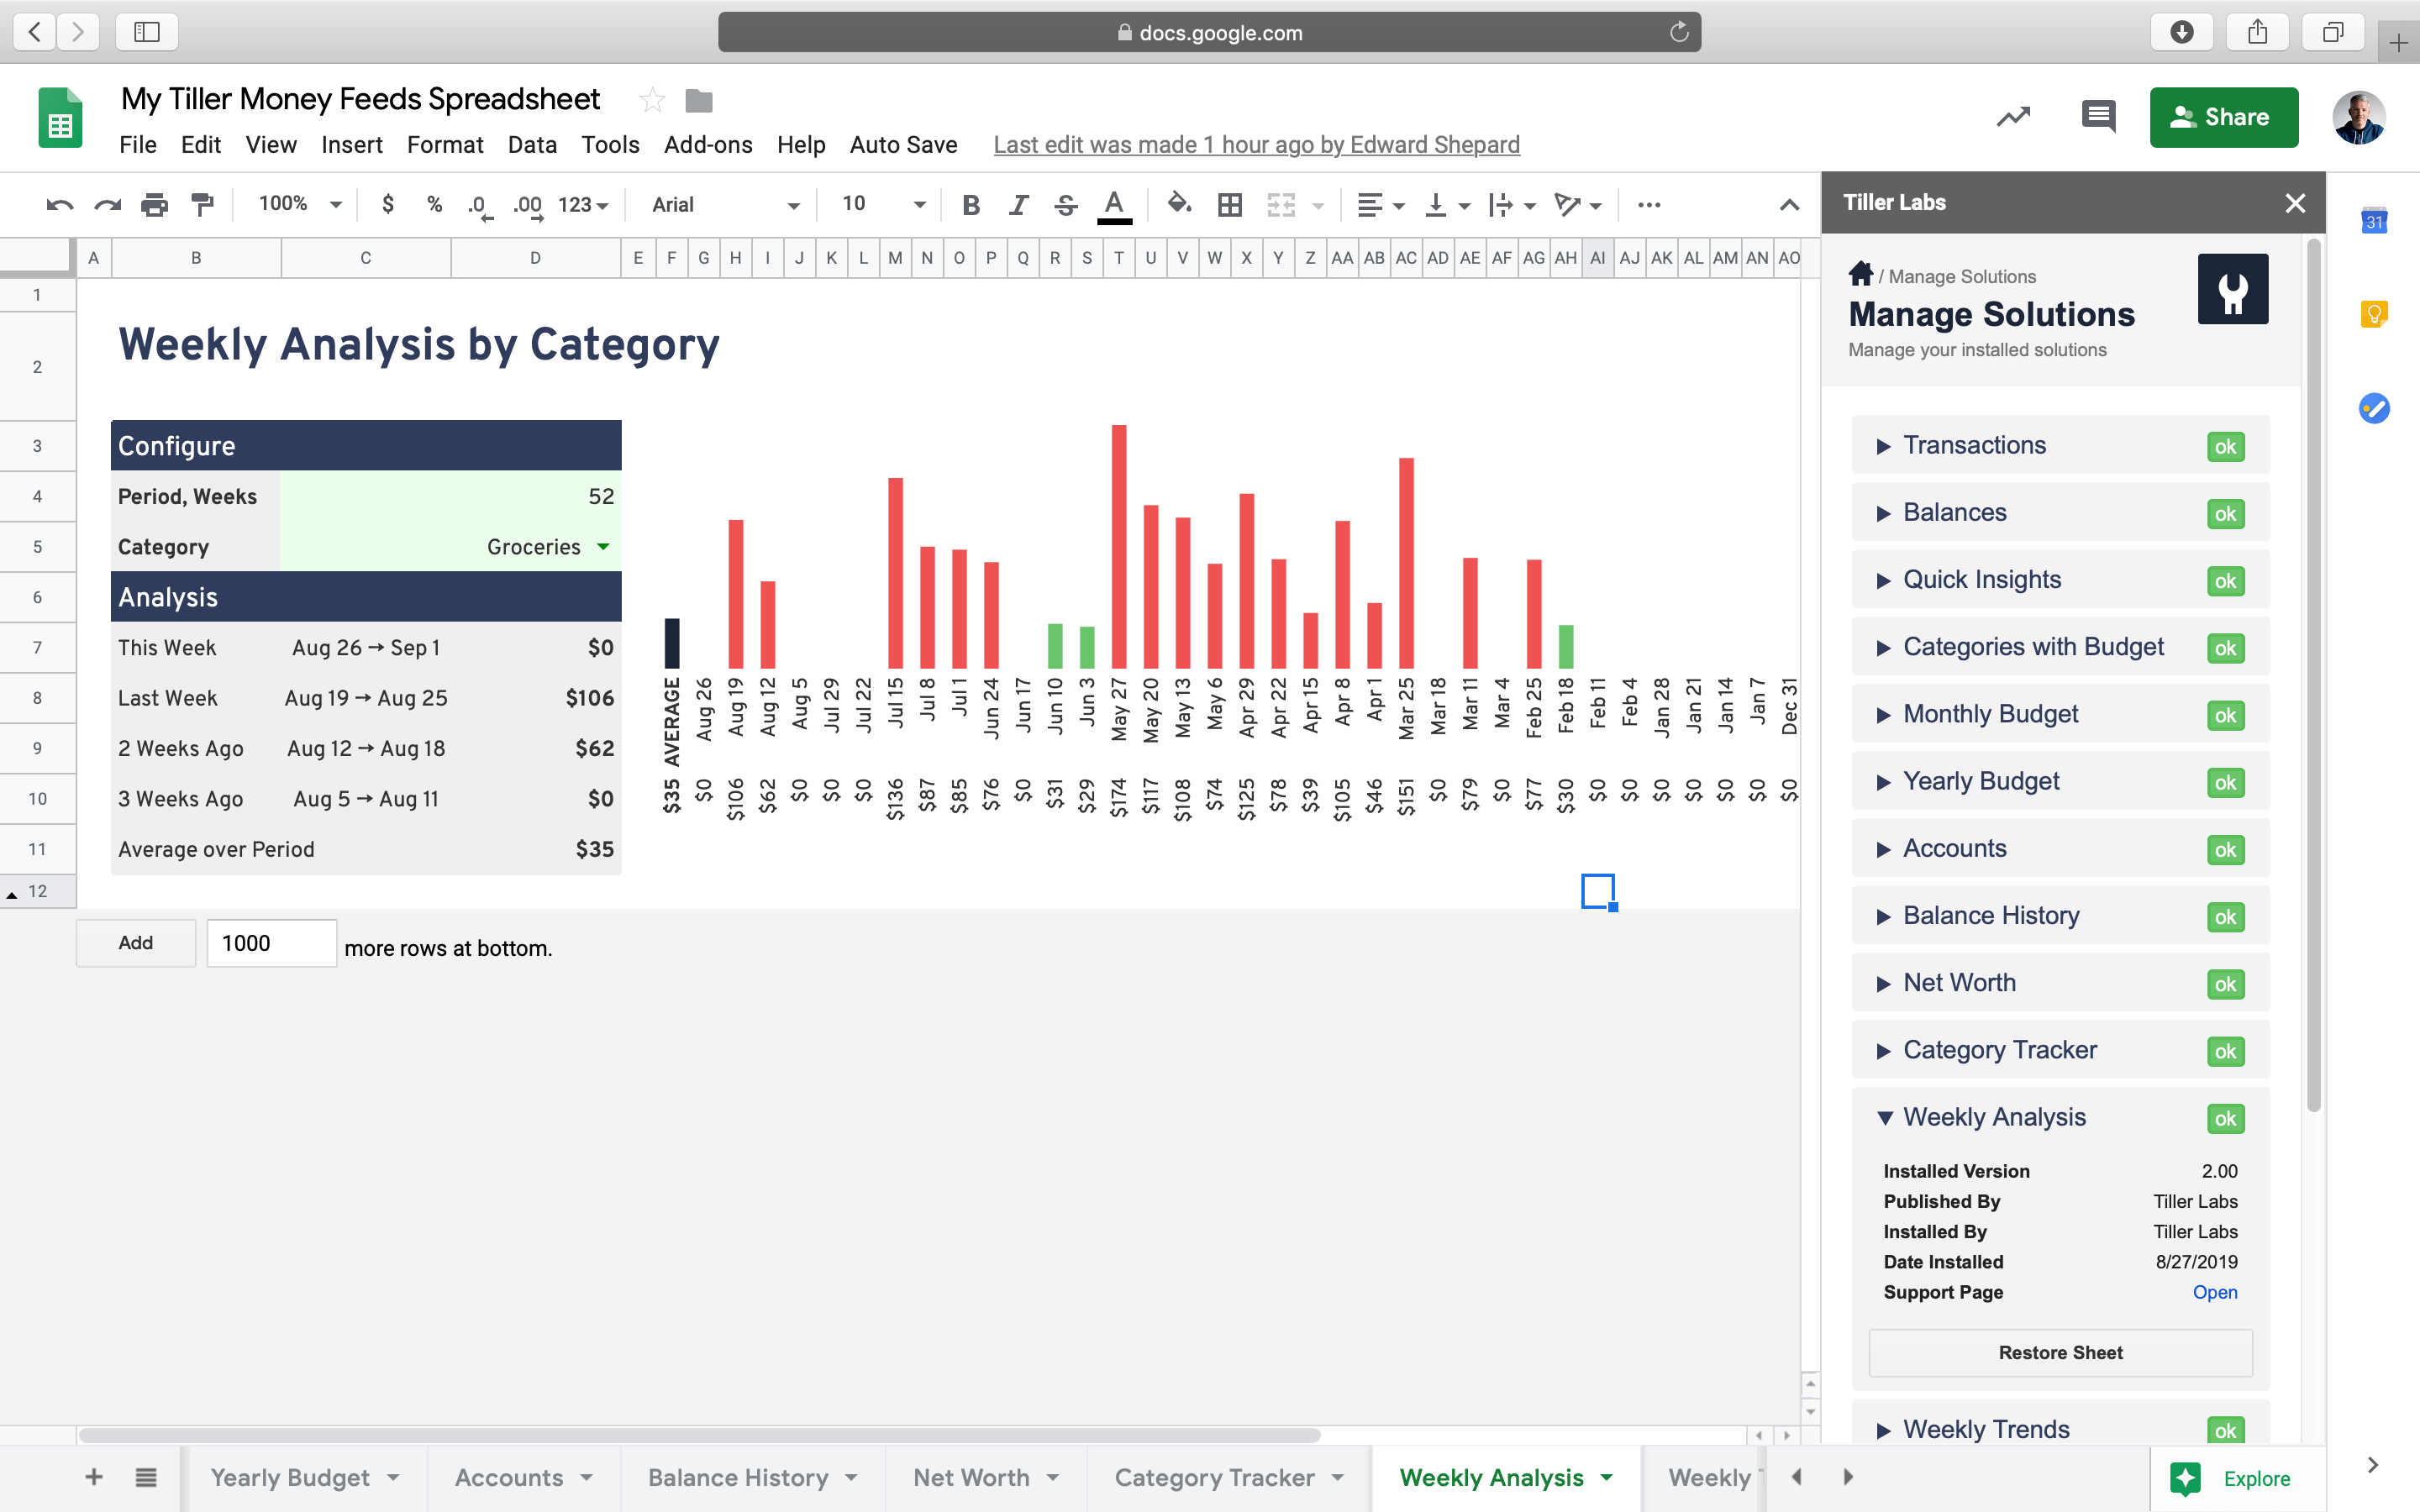 Weekly Spending Analysis by Category Report for Google Sheets